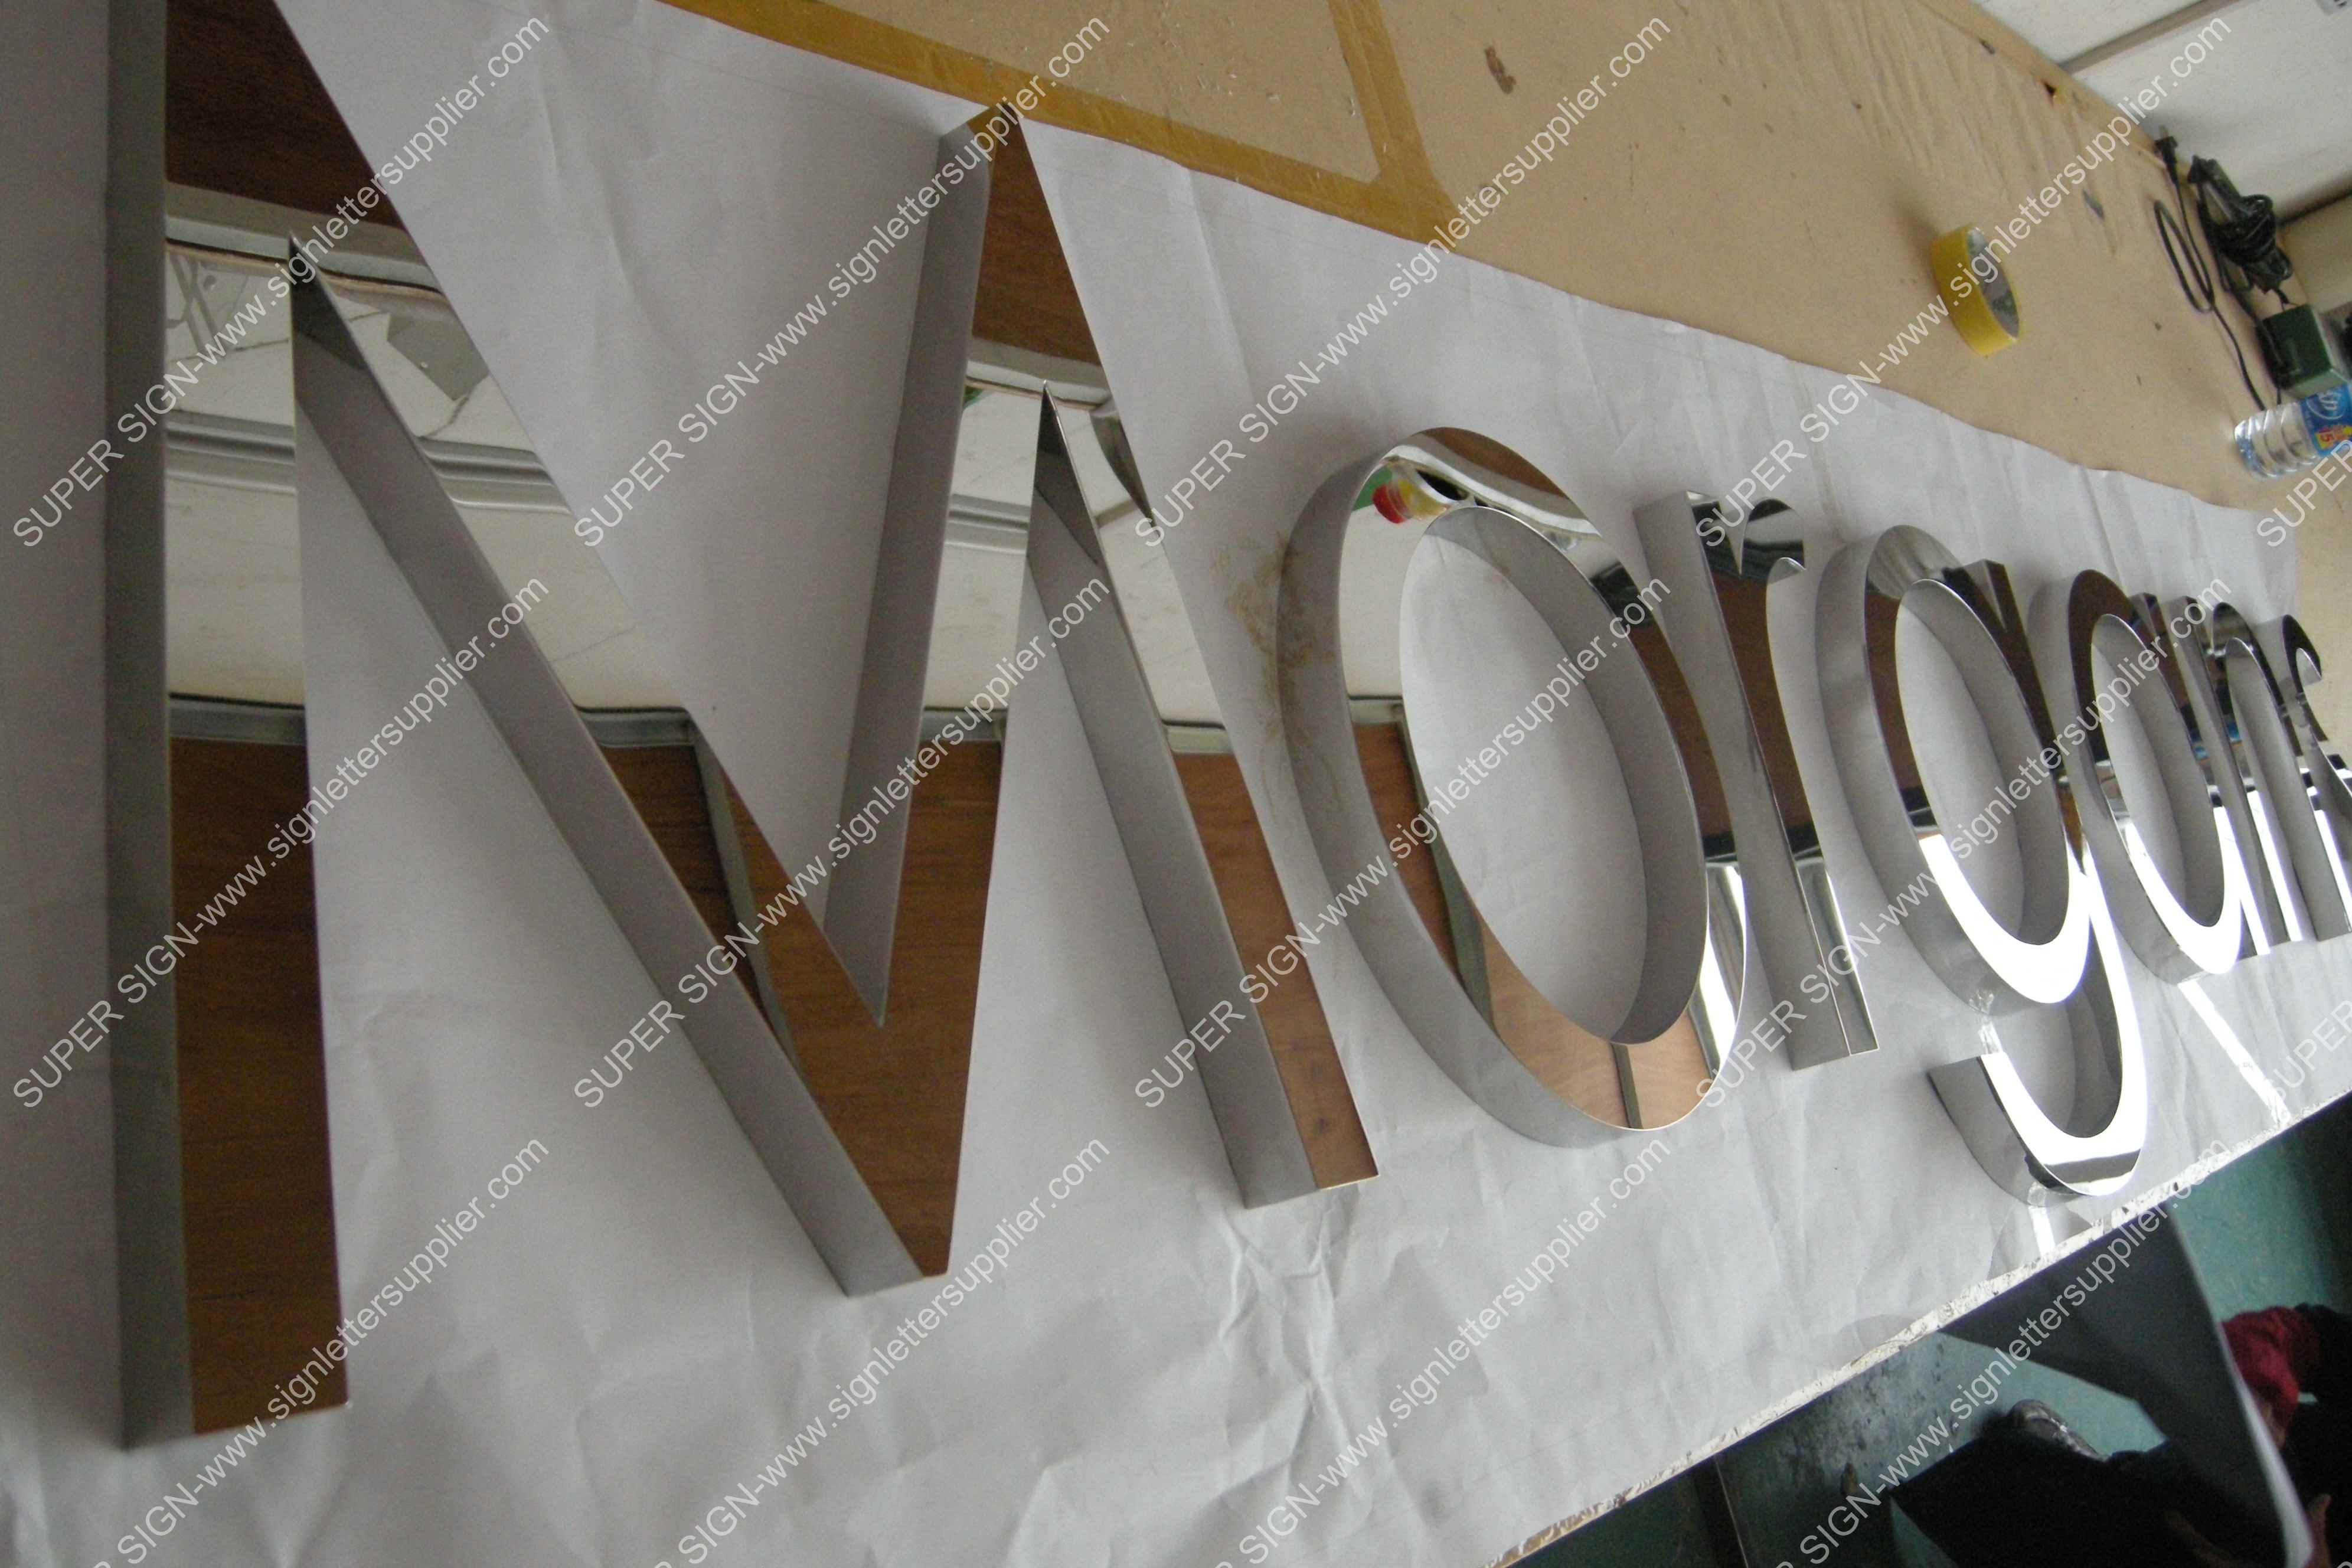 Fabricated polished steel letter